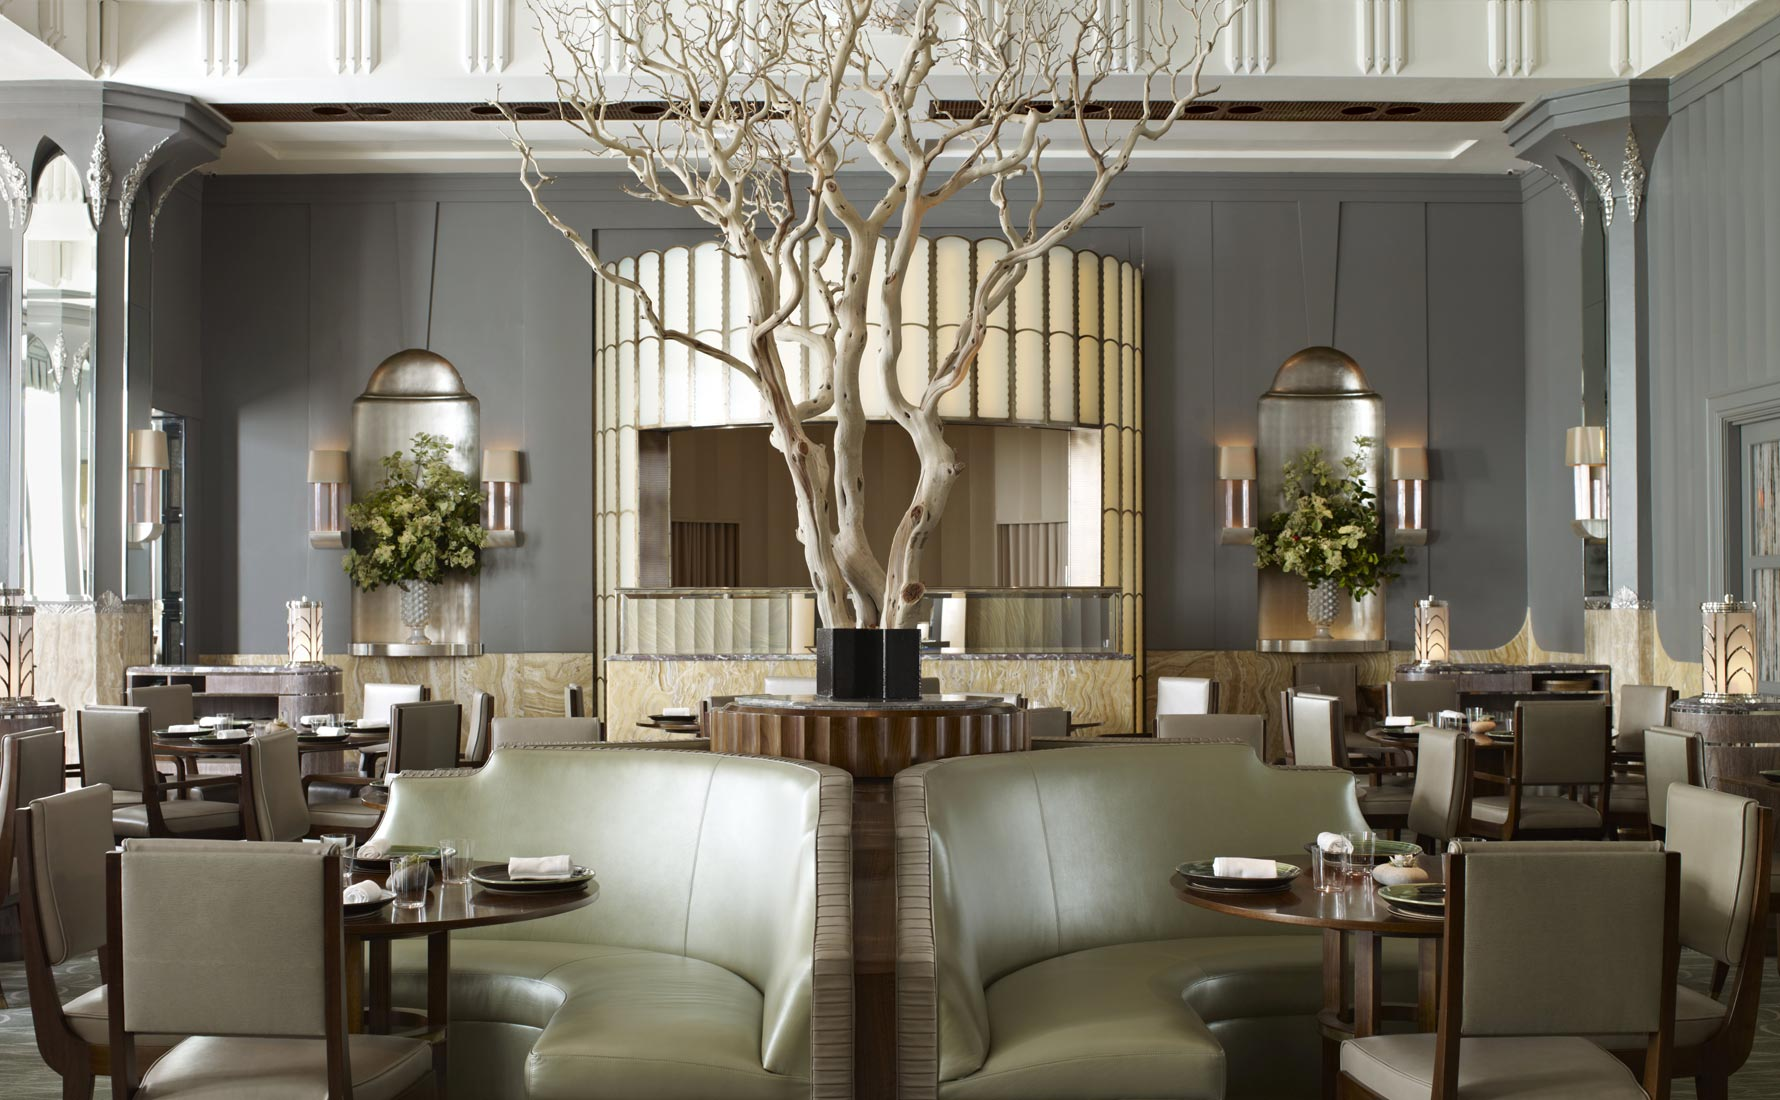 Best Restaurants in London - Top London Hotels - Fera at Claridge's restaurant - Interior Design by Guy Oliver, Oliver Laws - bespoke banquettes, tables and chairs by Ben Whistler - art deco contemporary - luxury furniture